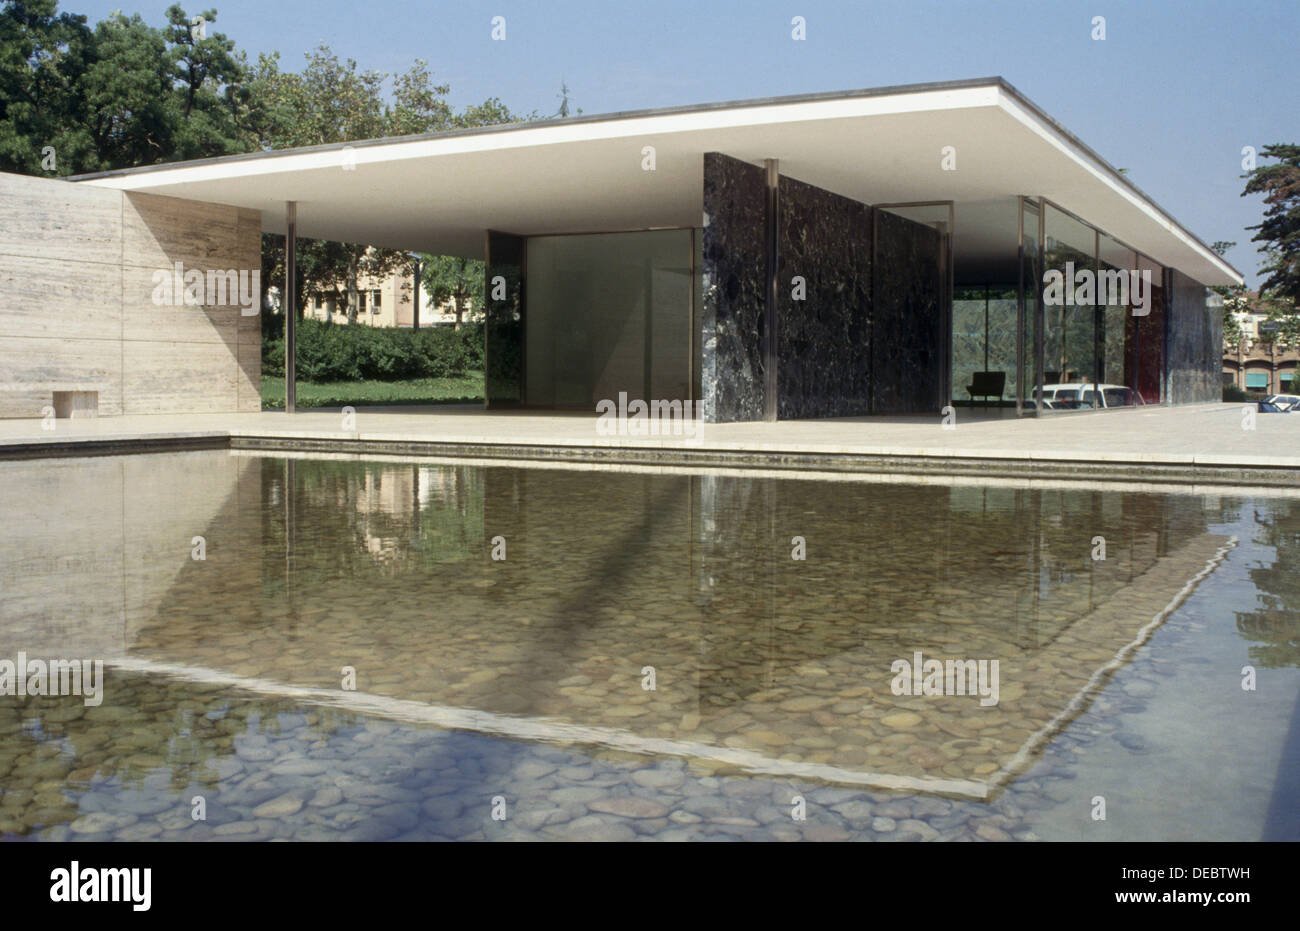 german pavilion 1929 by mies van der rohe barcelona spain stock photo royalty free image. Black Bedroom Furniture Sets. Home Design Ideas